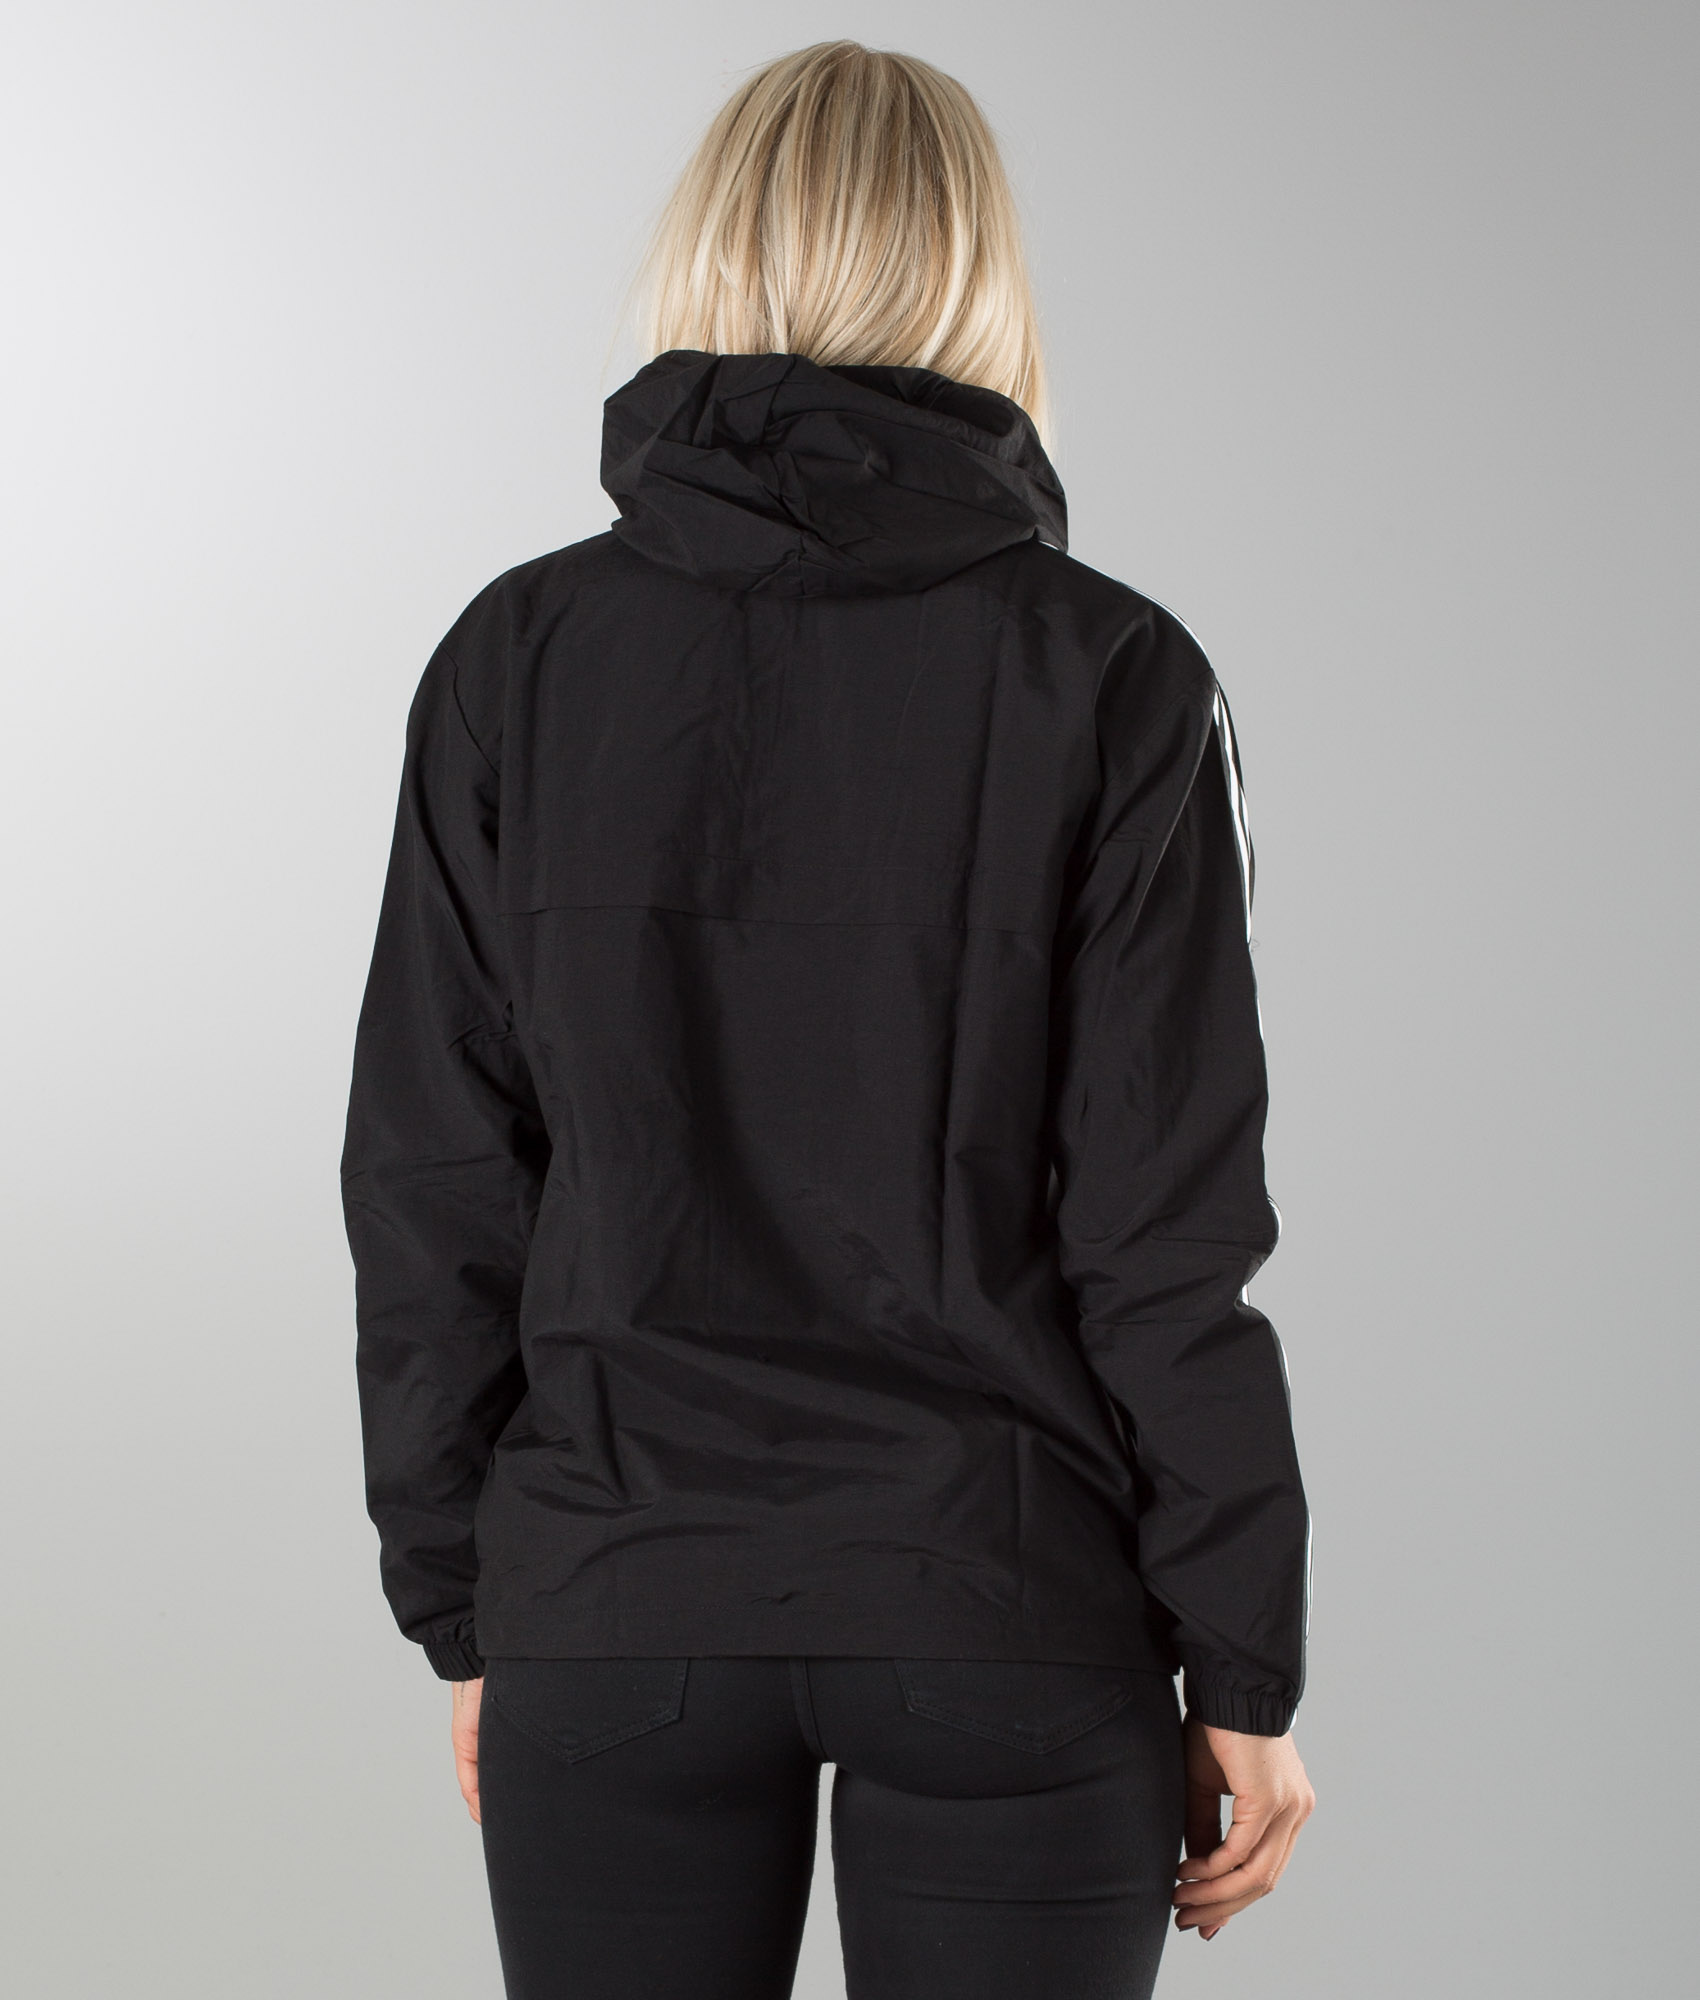 Adidas Originals 3Striped Wb Unisex Giacca Black